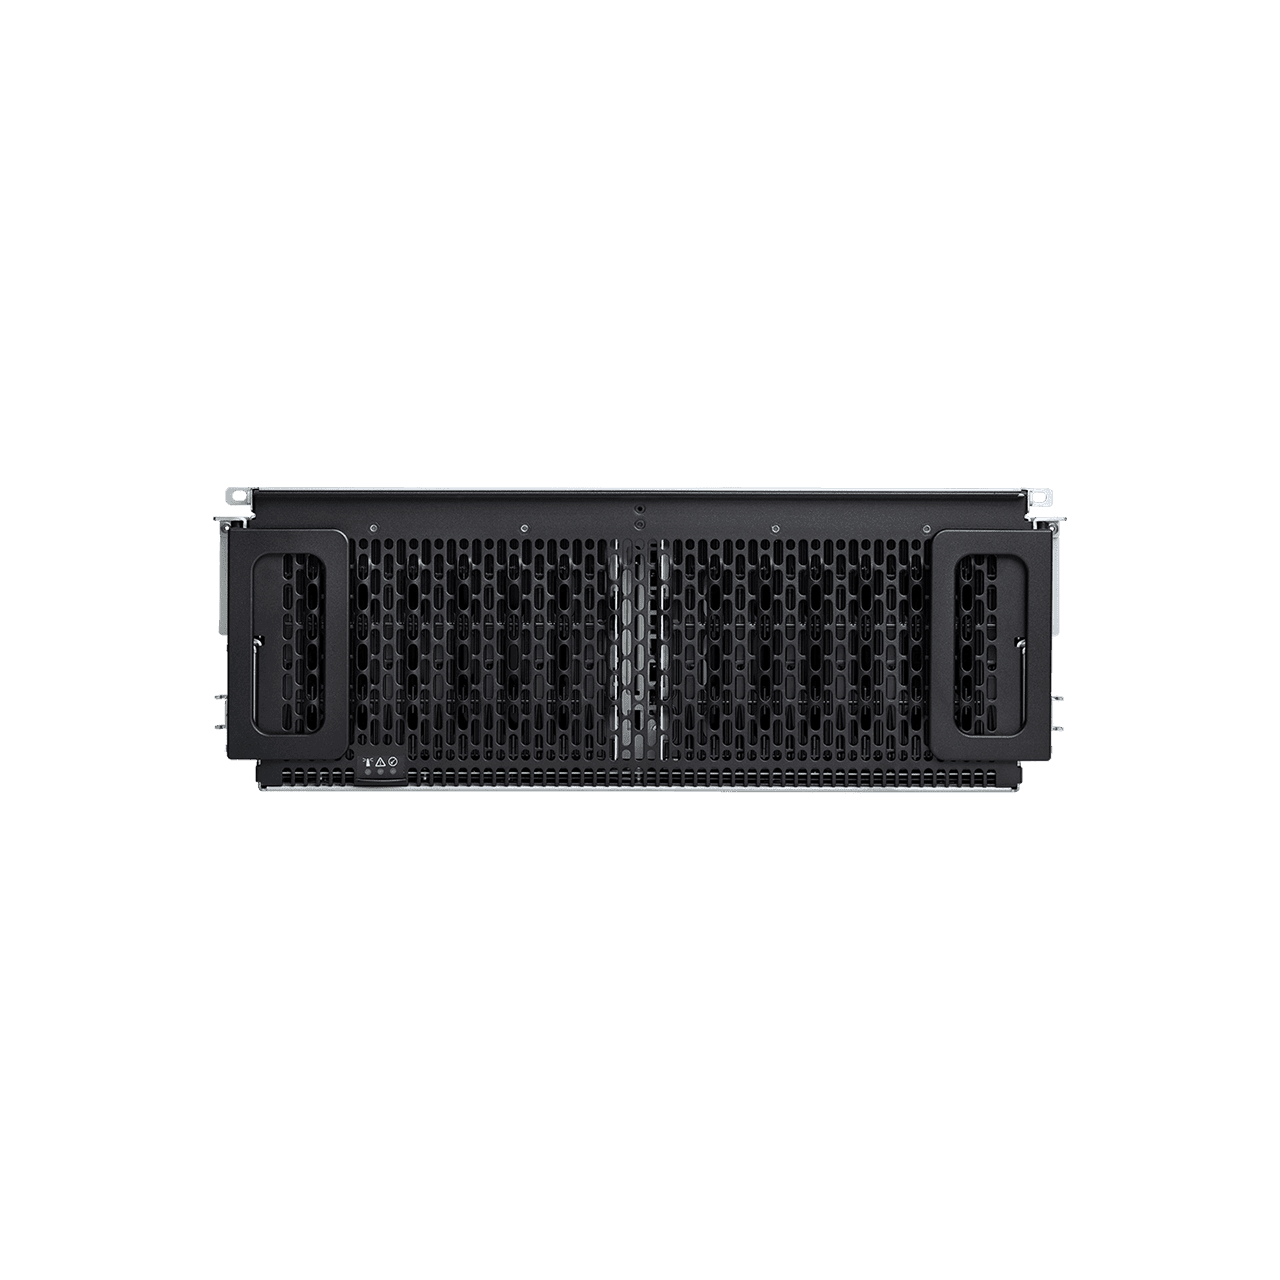 ultrastar-data60-hybrid-storage-platform-front-1-western-digital